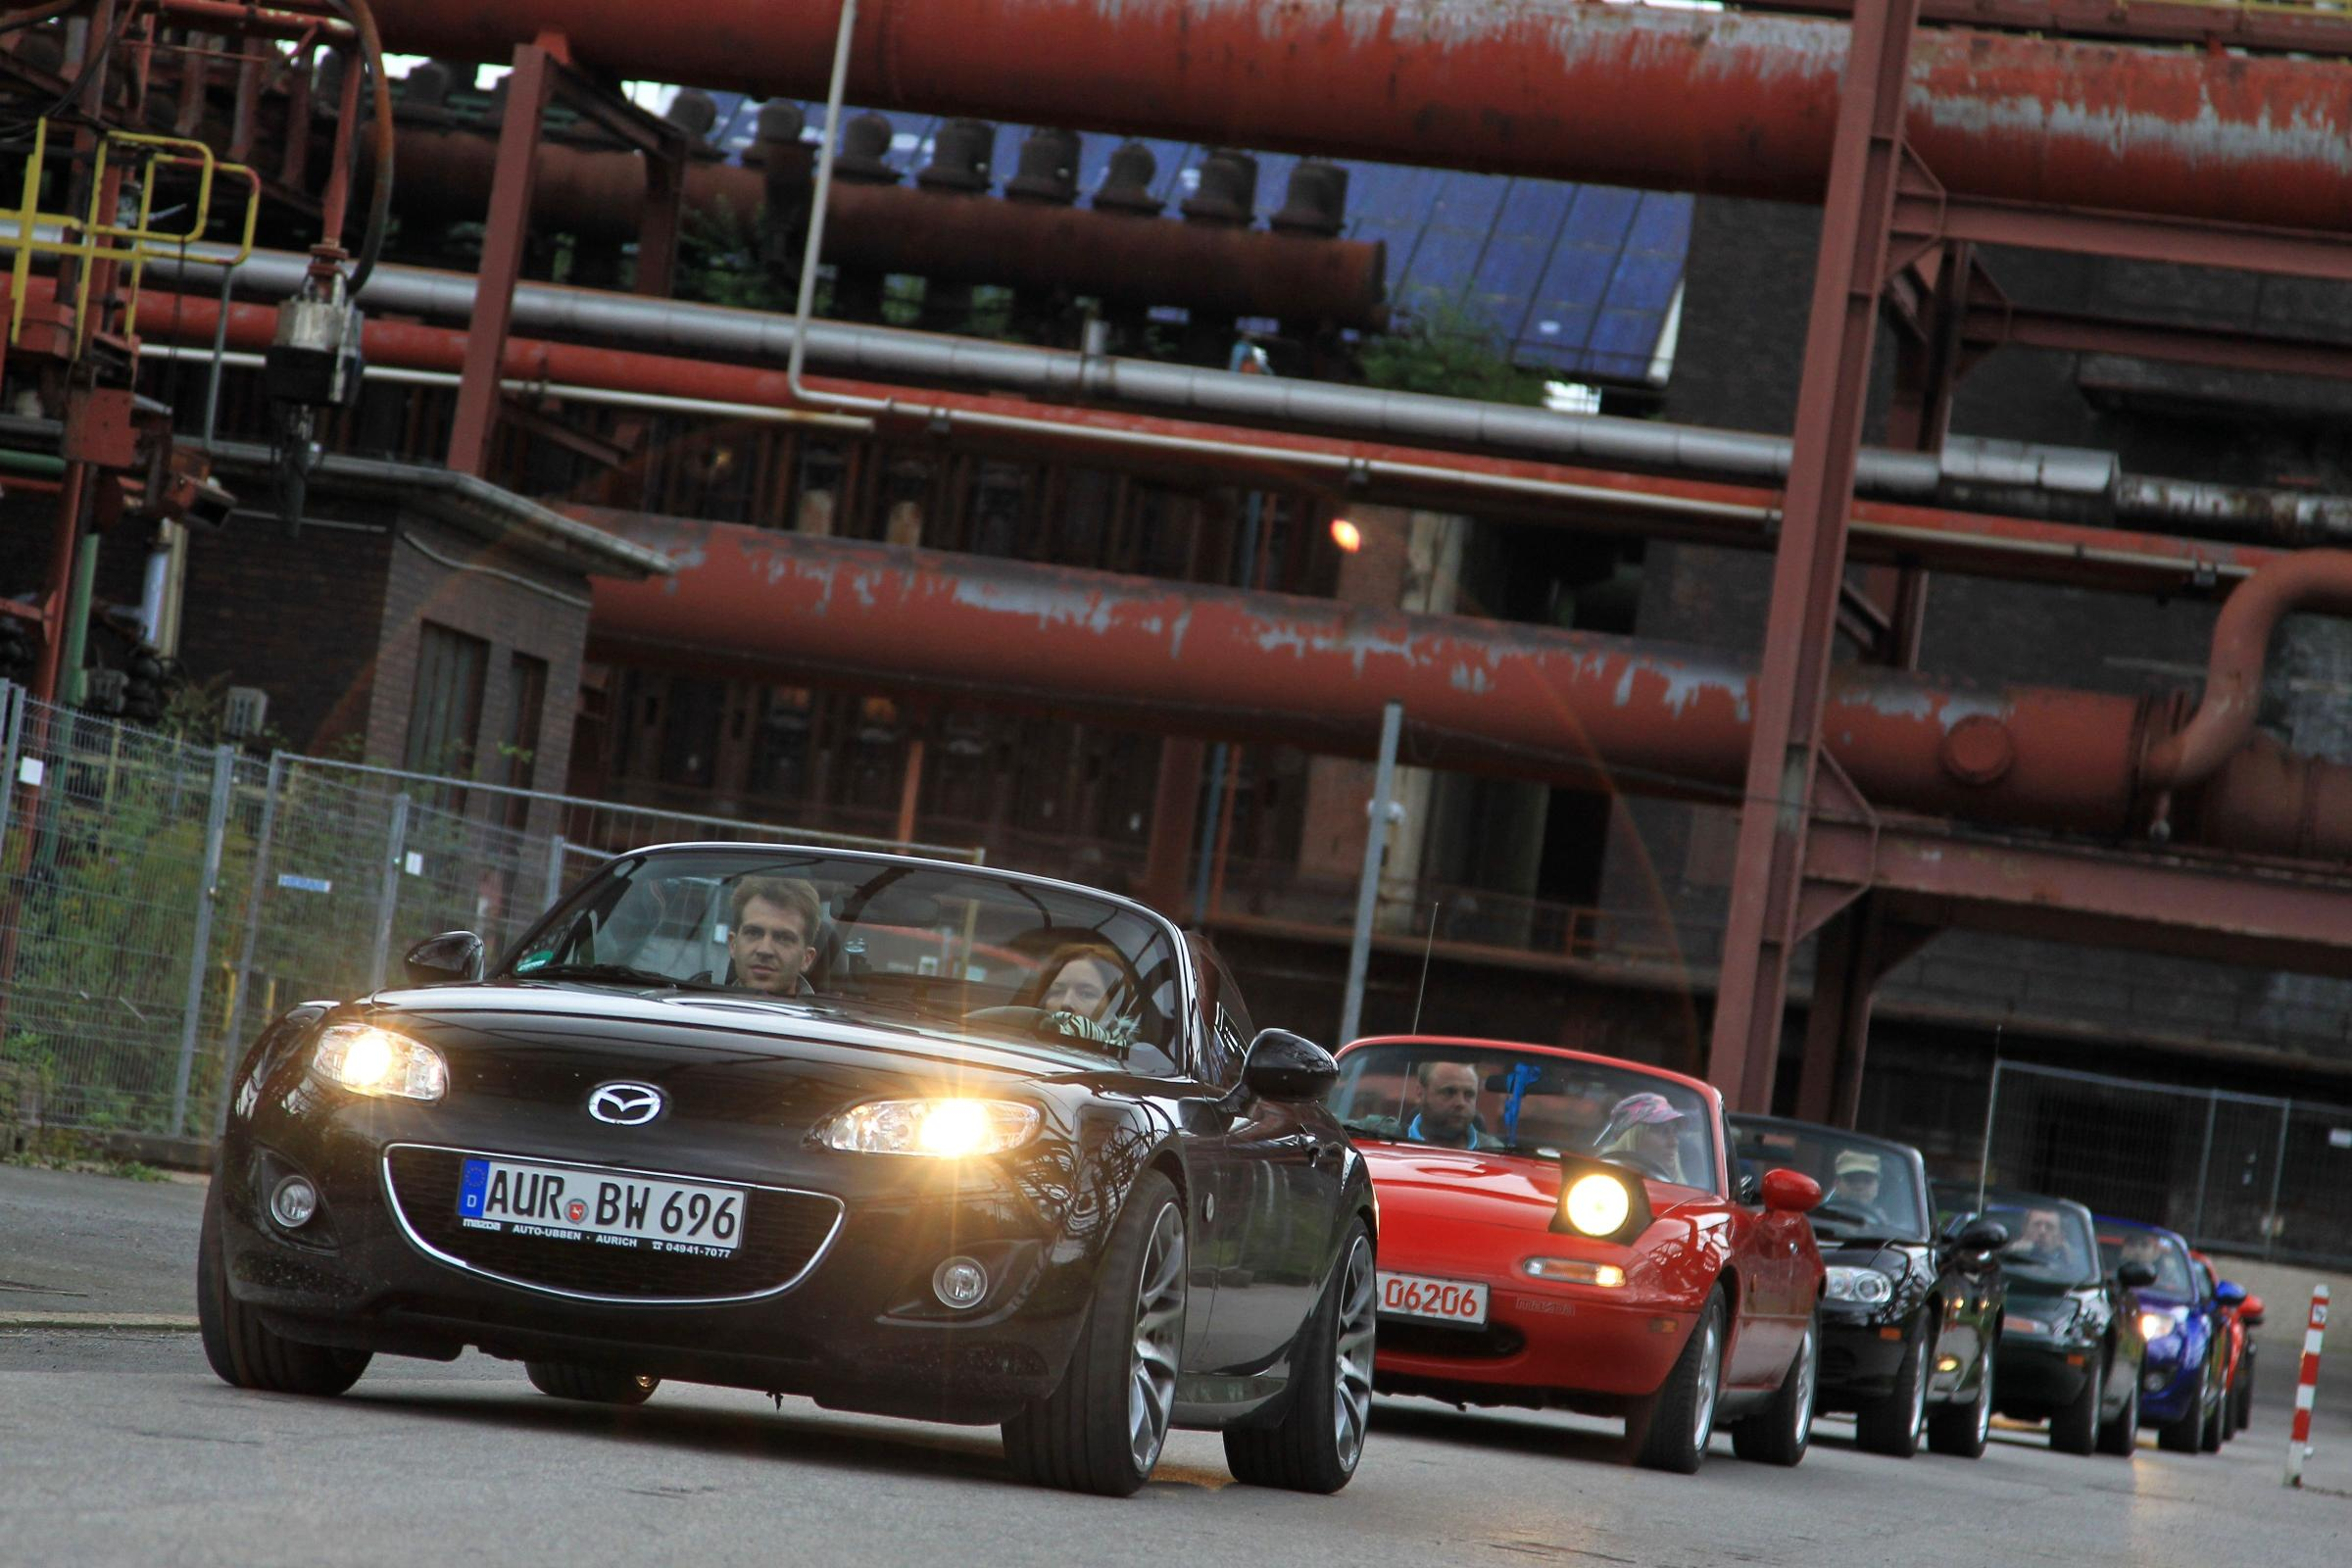 459 Mazda MX-5s set the 2010 world record in Germany